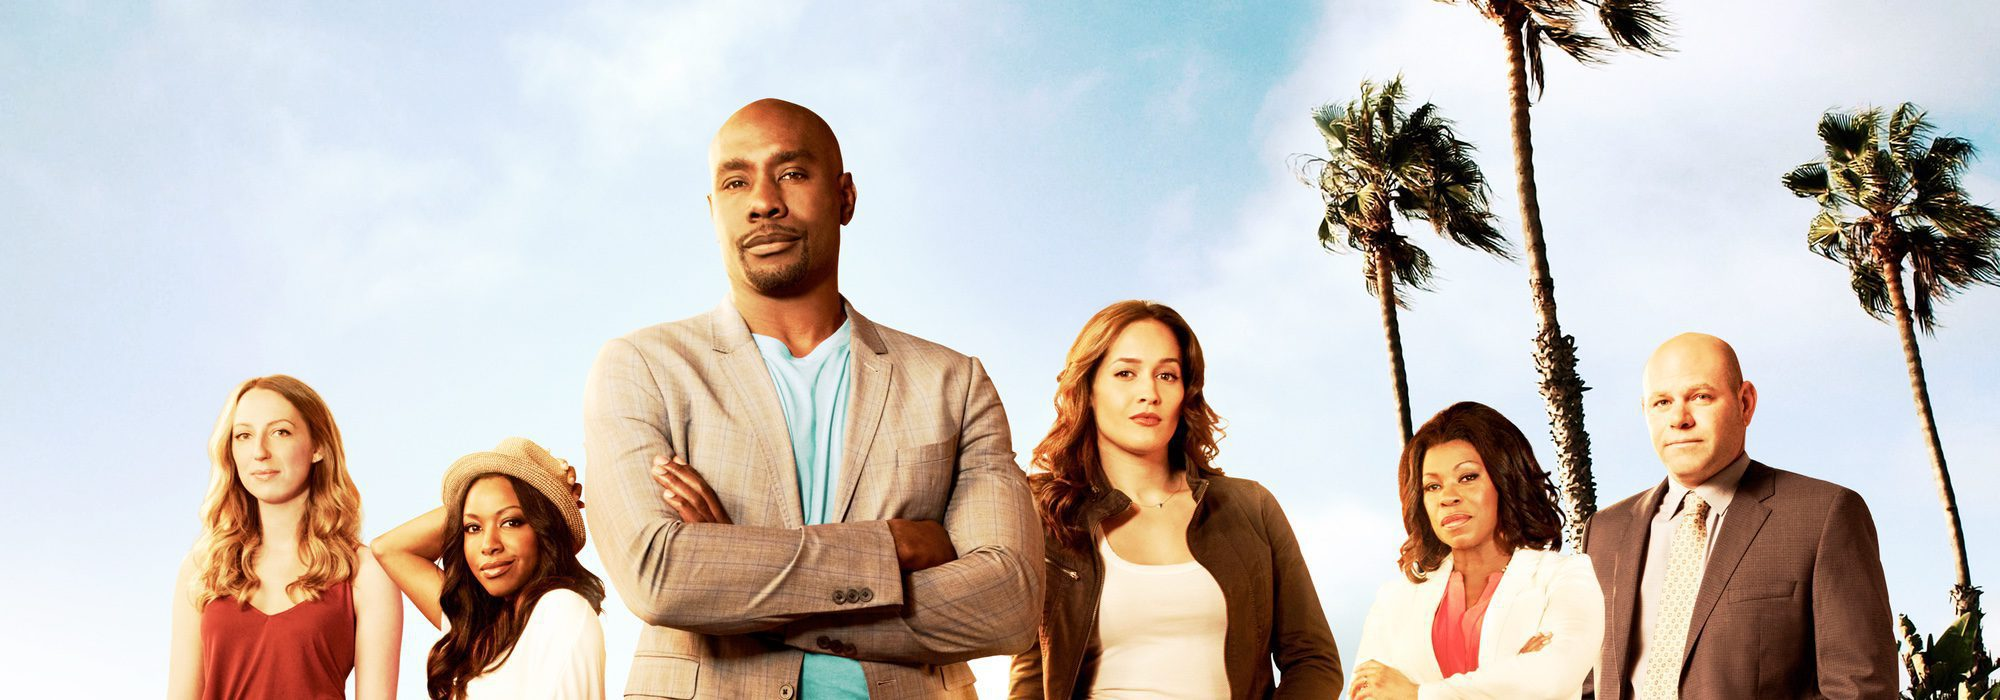 Rosewood serie tv formulatv for The rosewood